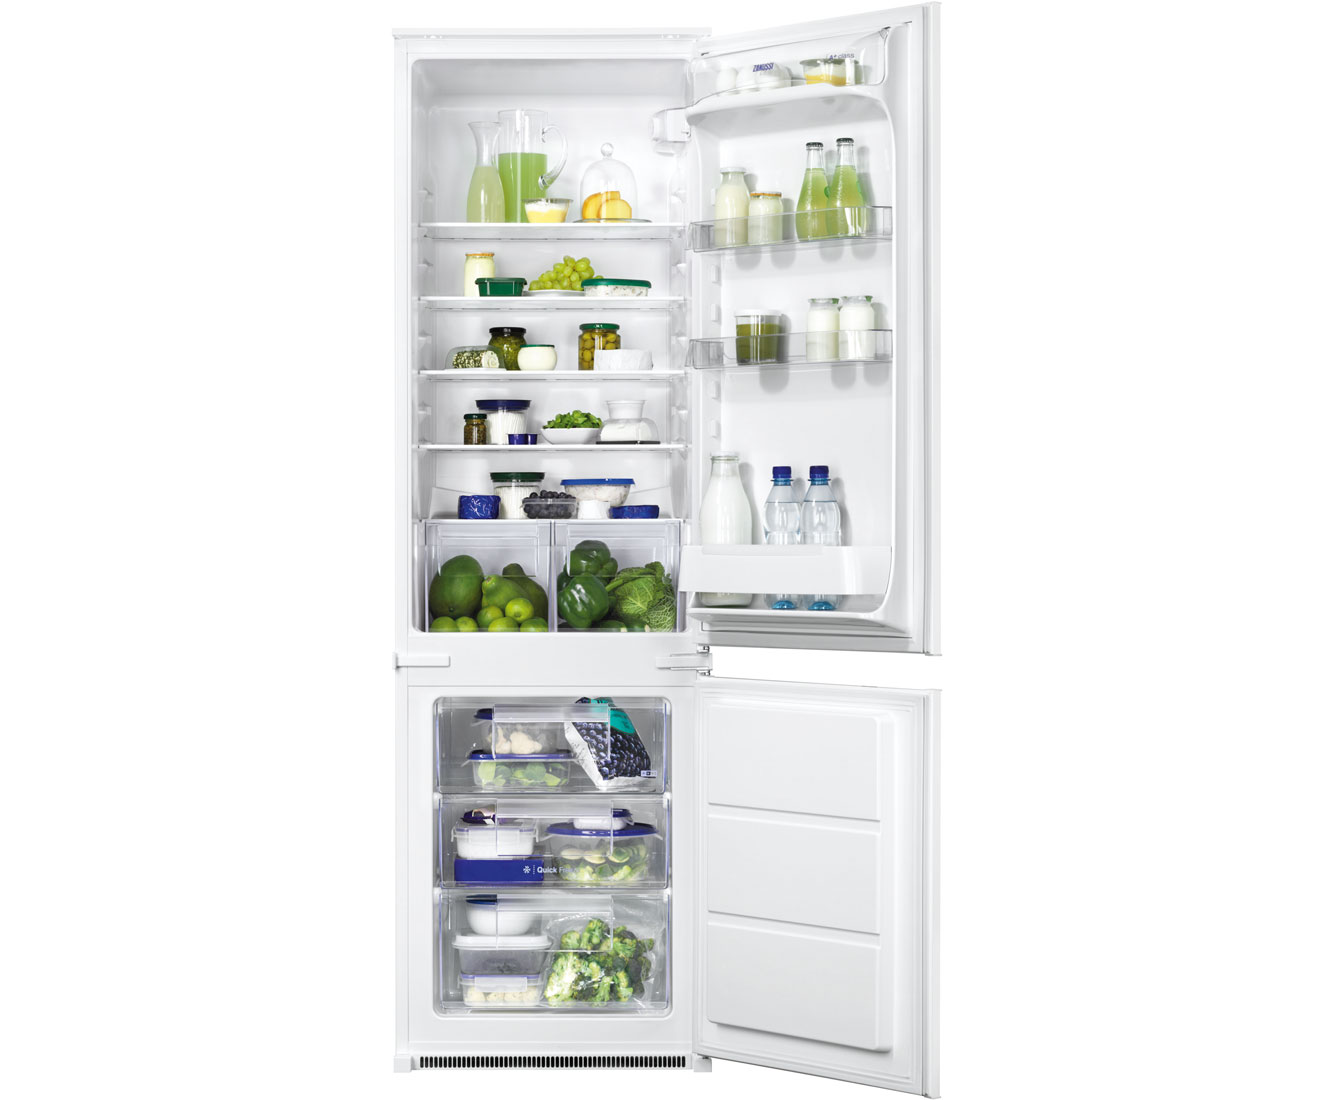 Zanussi ZBB28442SA Integrated Fridge Freezer in White